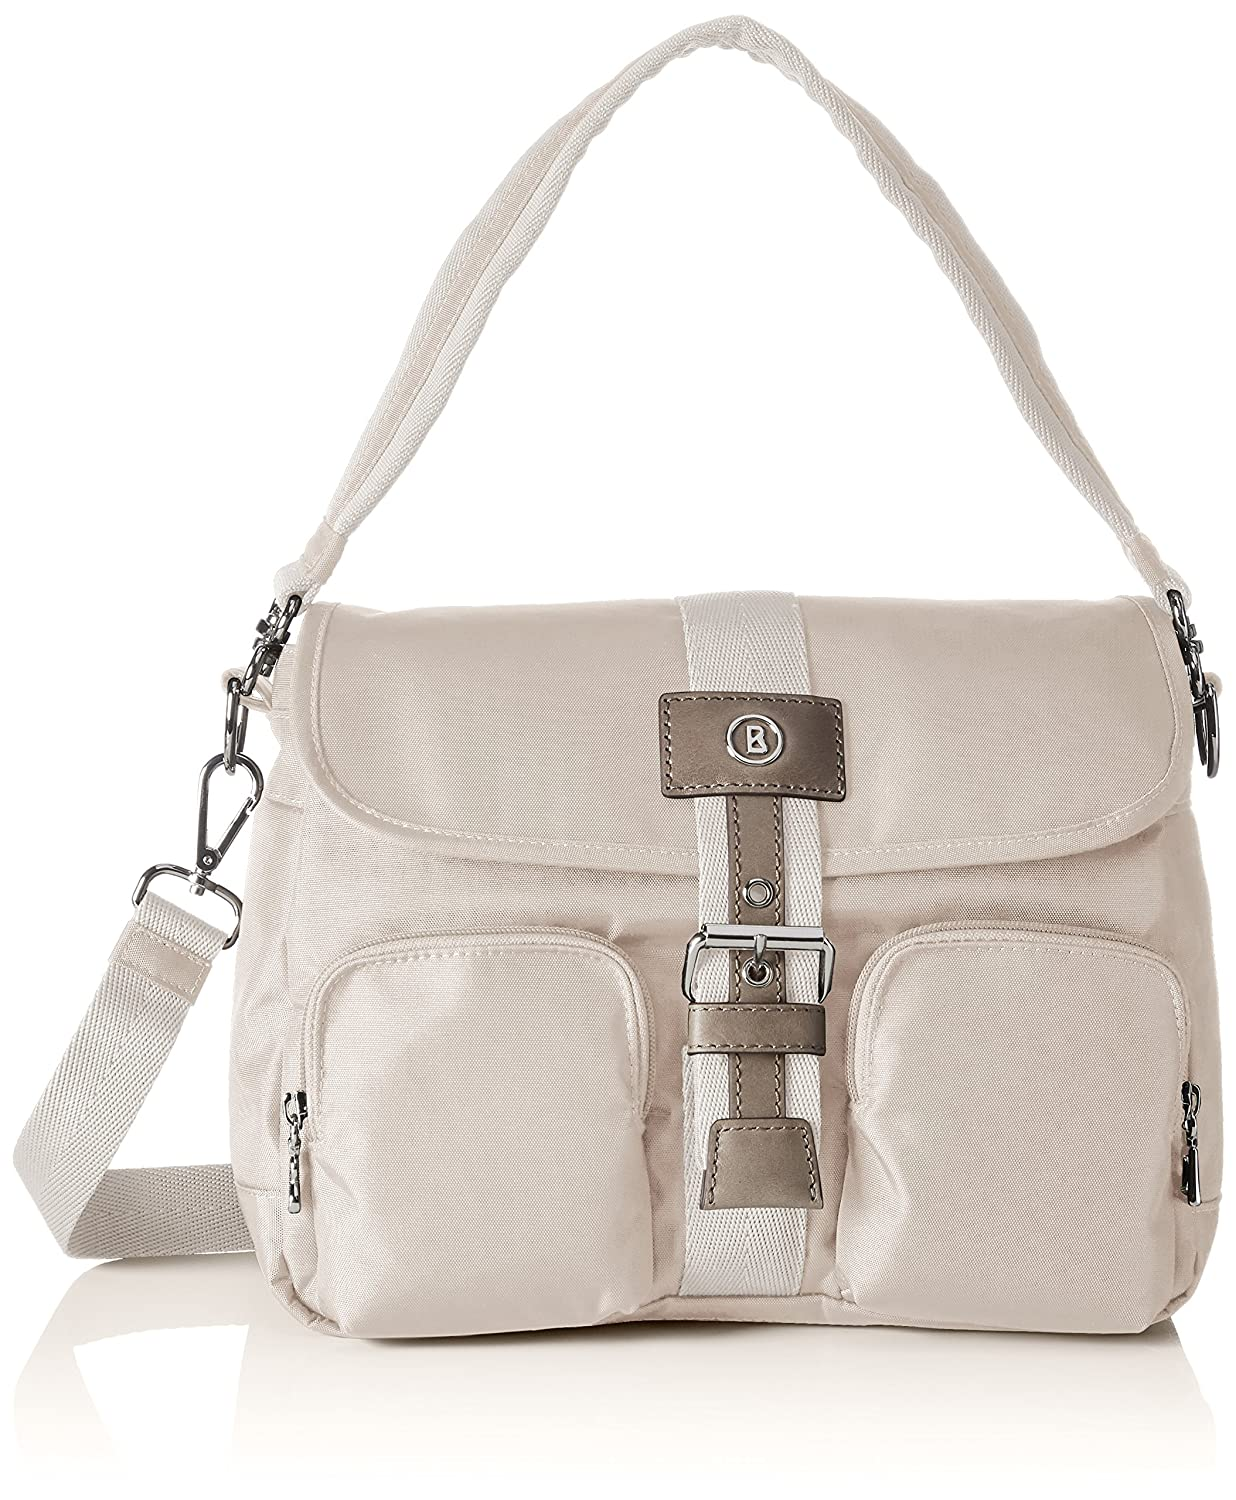 Beige (Cocoon 431) Bogner Women's Eilis Shoulder Bag